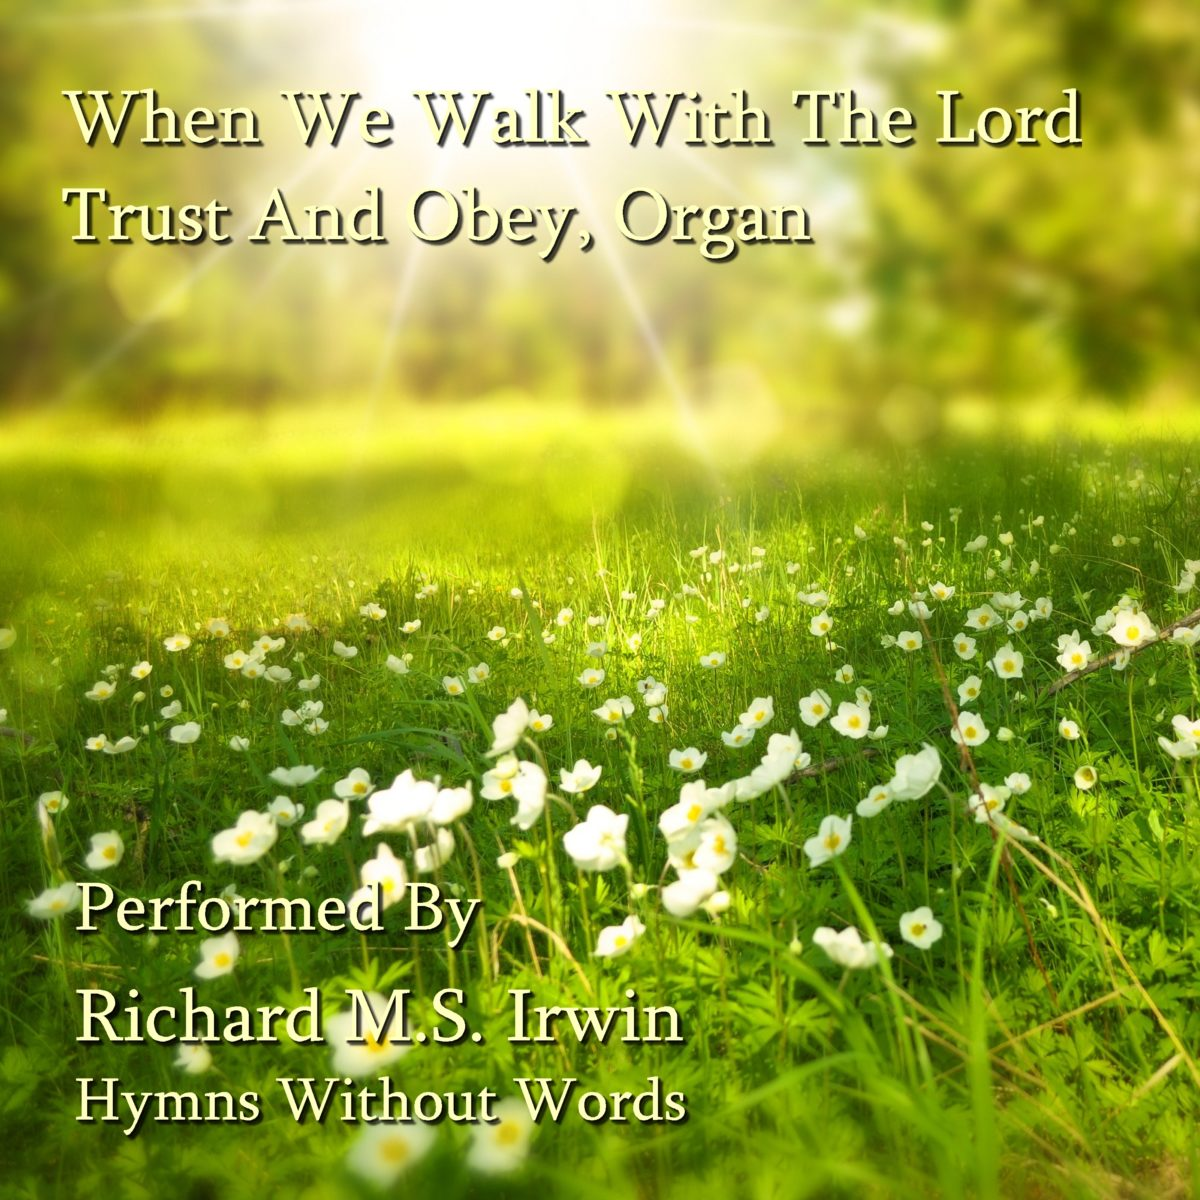 When We Walk With The Lord (Trust And Obey, Organ, 4 Verses)